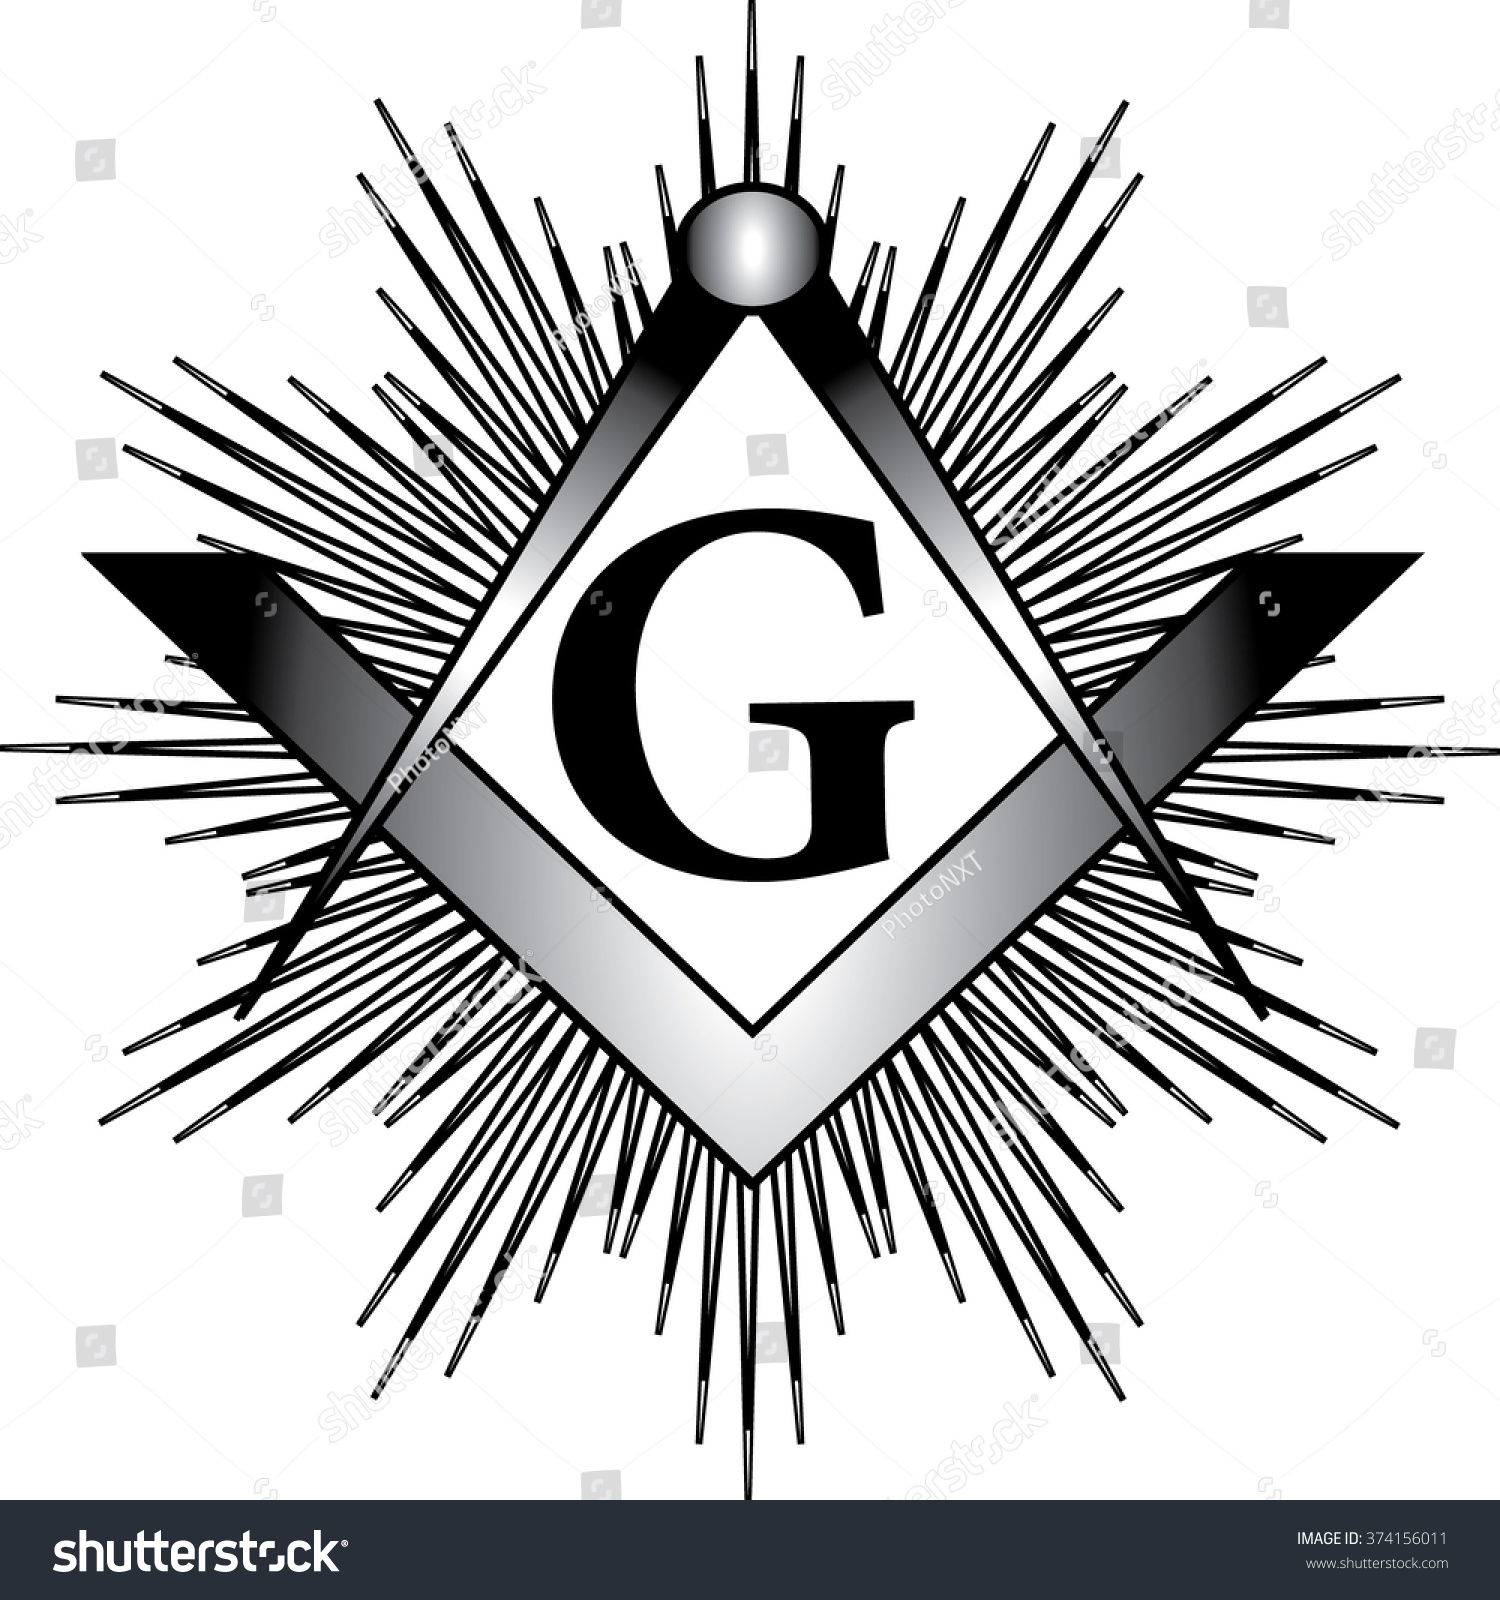 Masonic Square Compass G Letter Rays Stock Photo Photo Vector